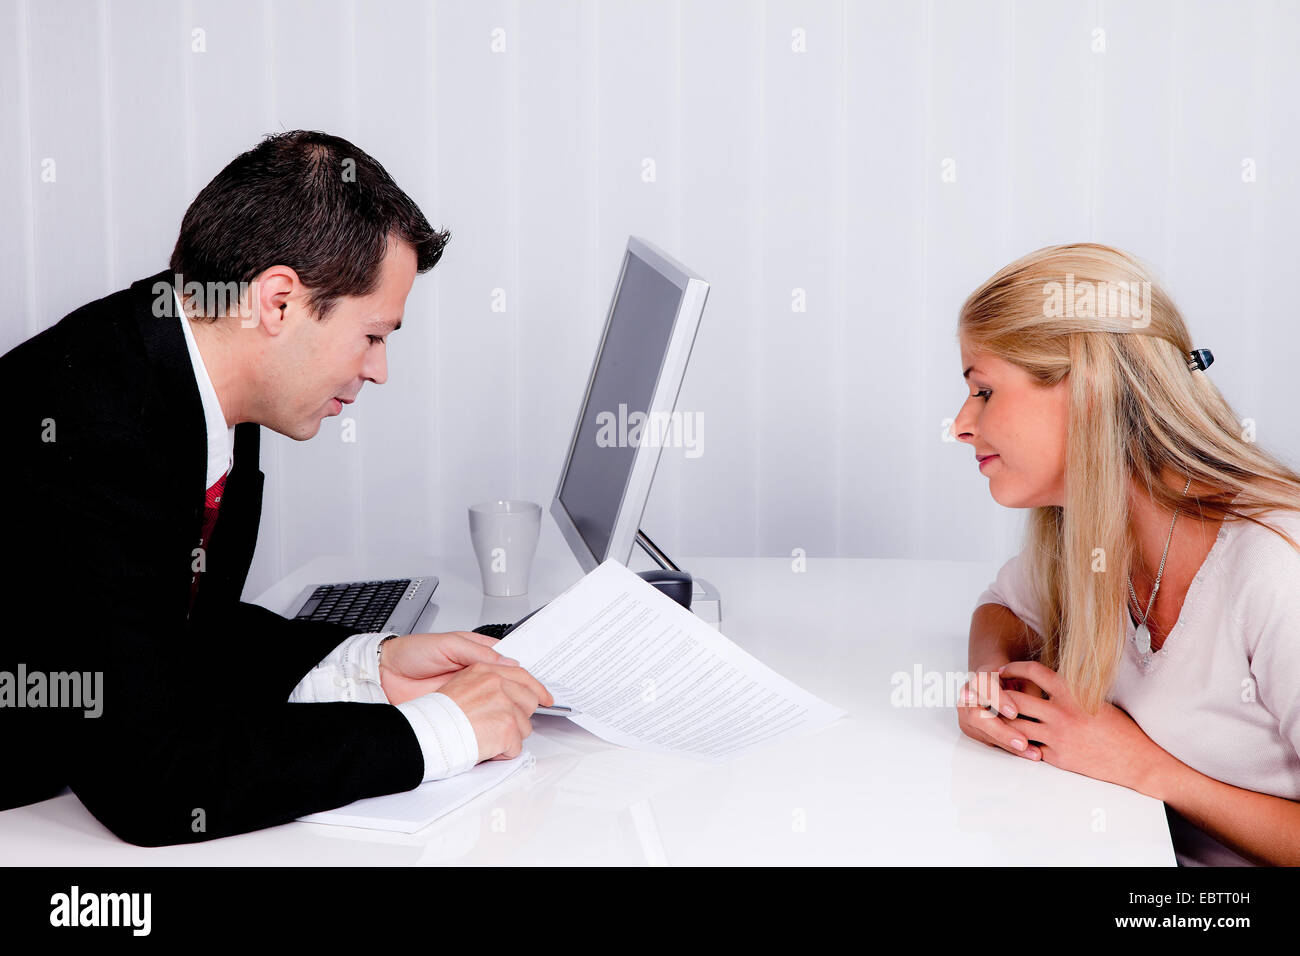 man an woman talking in an office Stock Photo